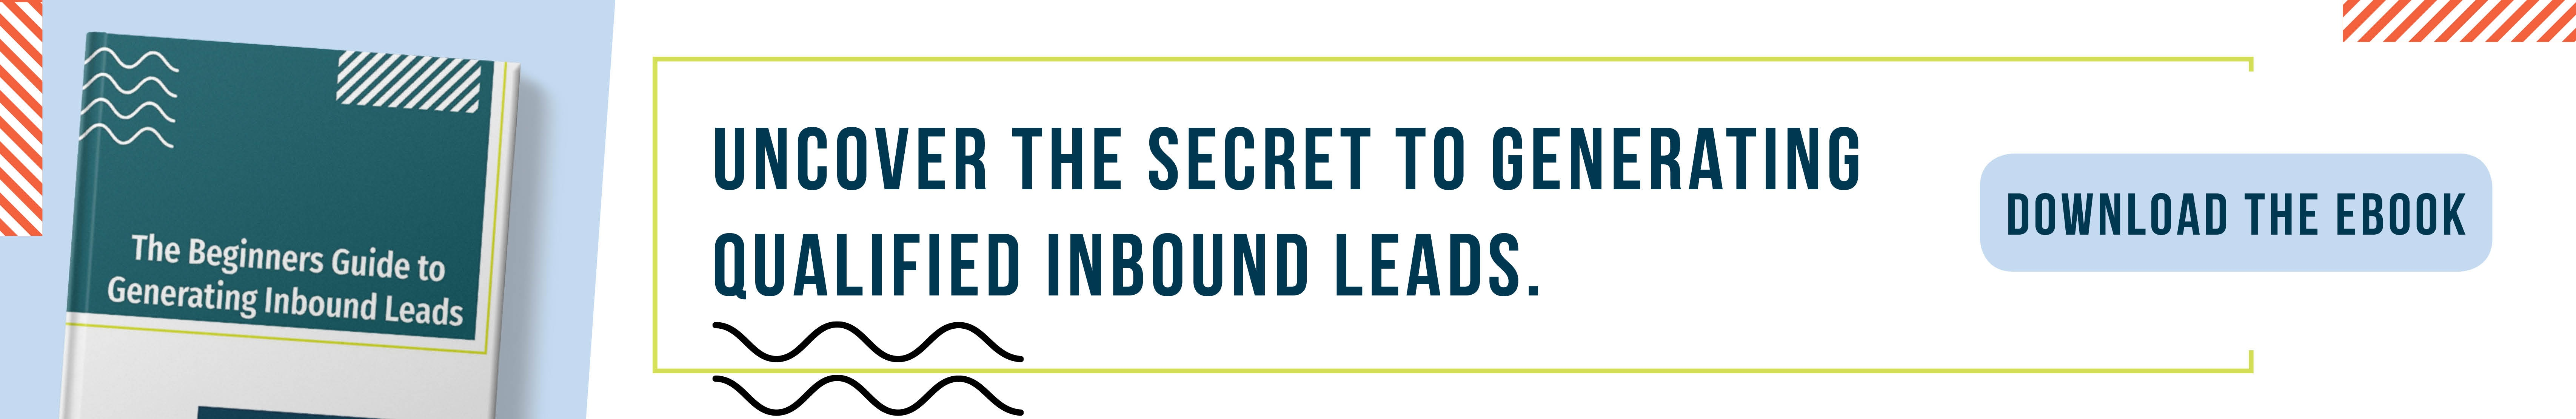 The Beginners Guide to Generating Inbound Leads